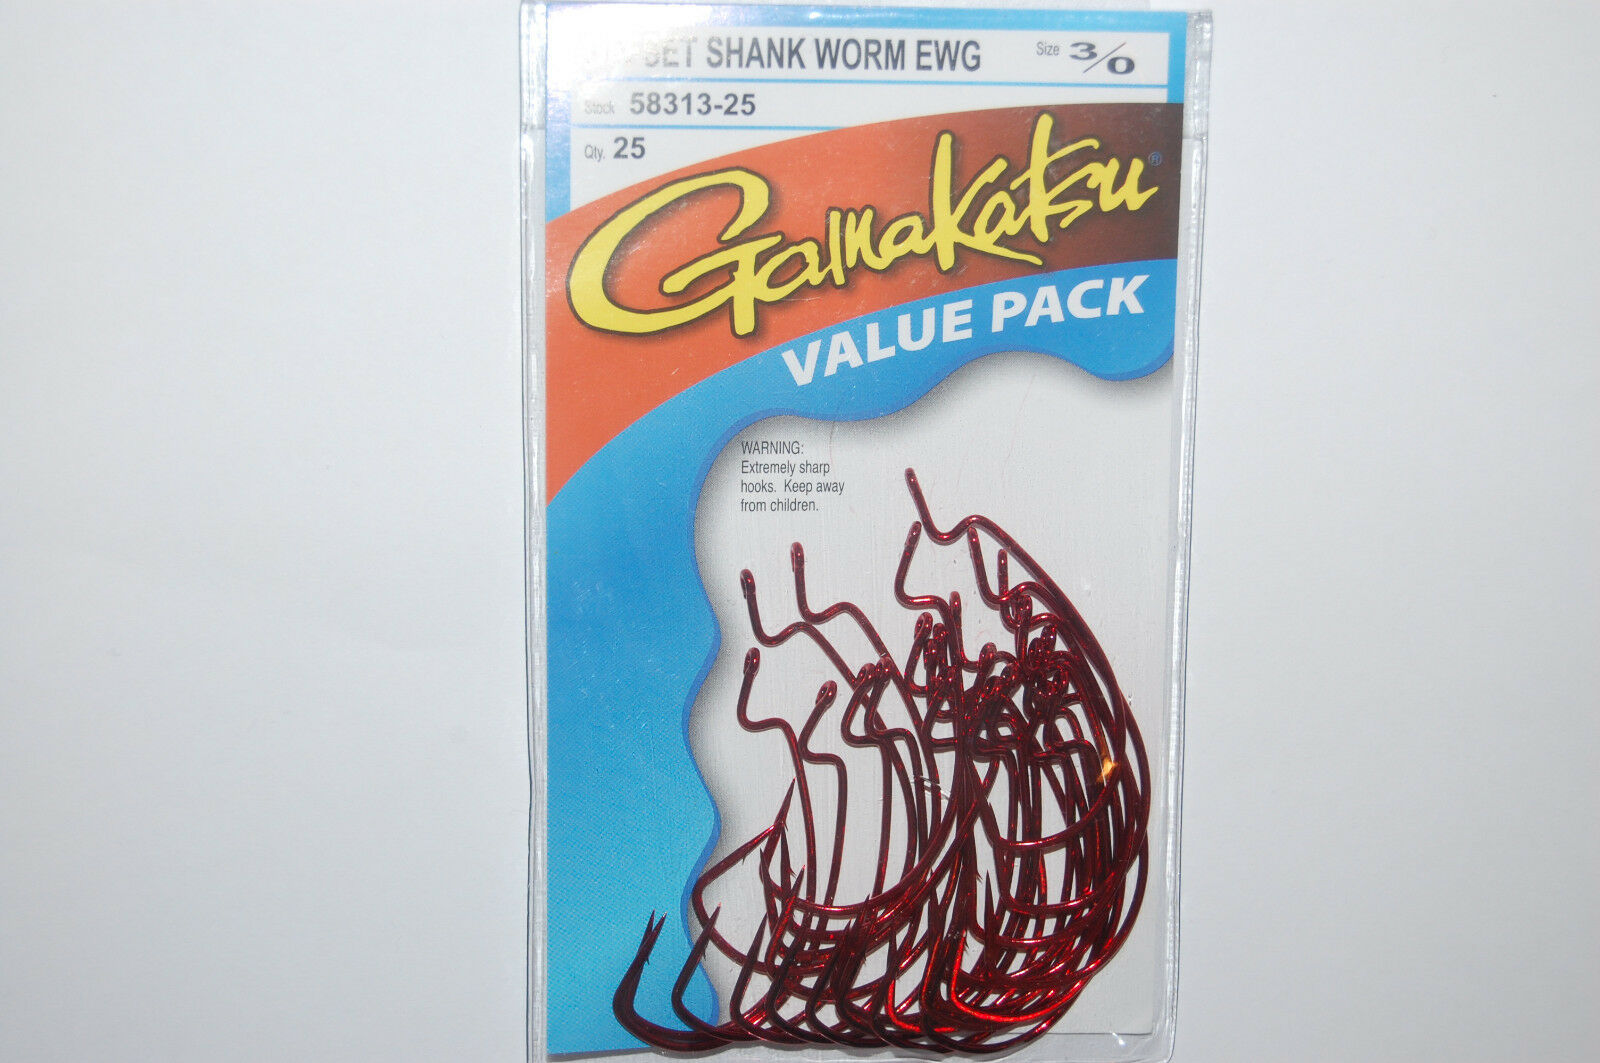 New Gamakatsu 3//0 Red Offset Shank Worm EWG Value Pack 25 Fish Hooks